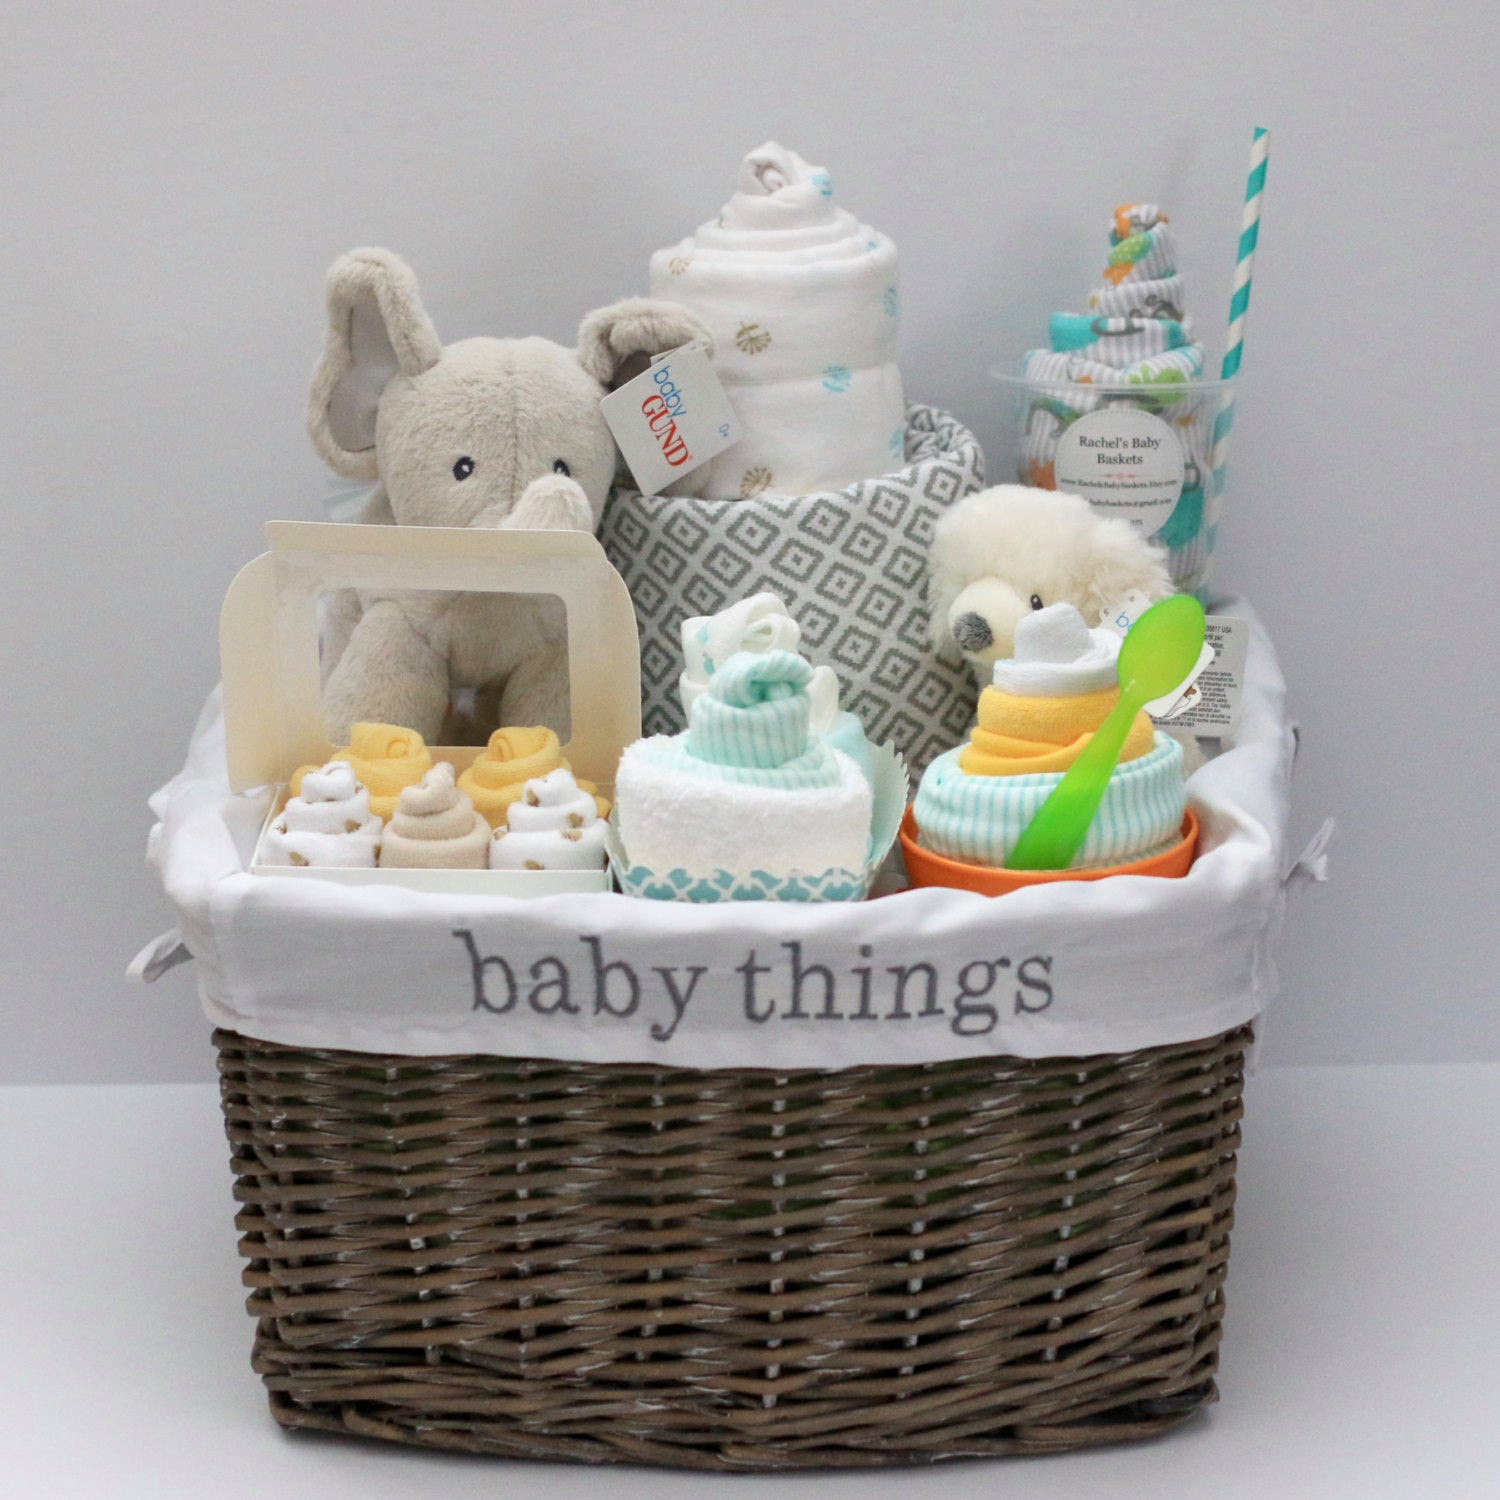 Best ideas about Gift Basket Ideas For Baby Shower . Save or Pin Gender Neutral Baby Gift Basket Baby Shower Gift Unique Baby Now.